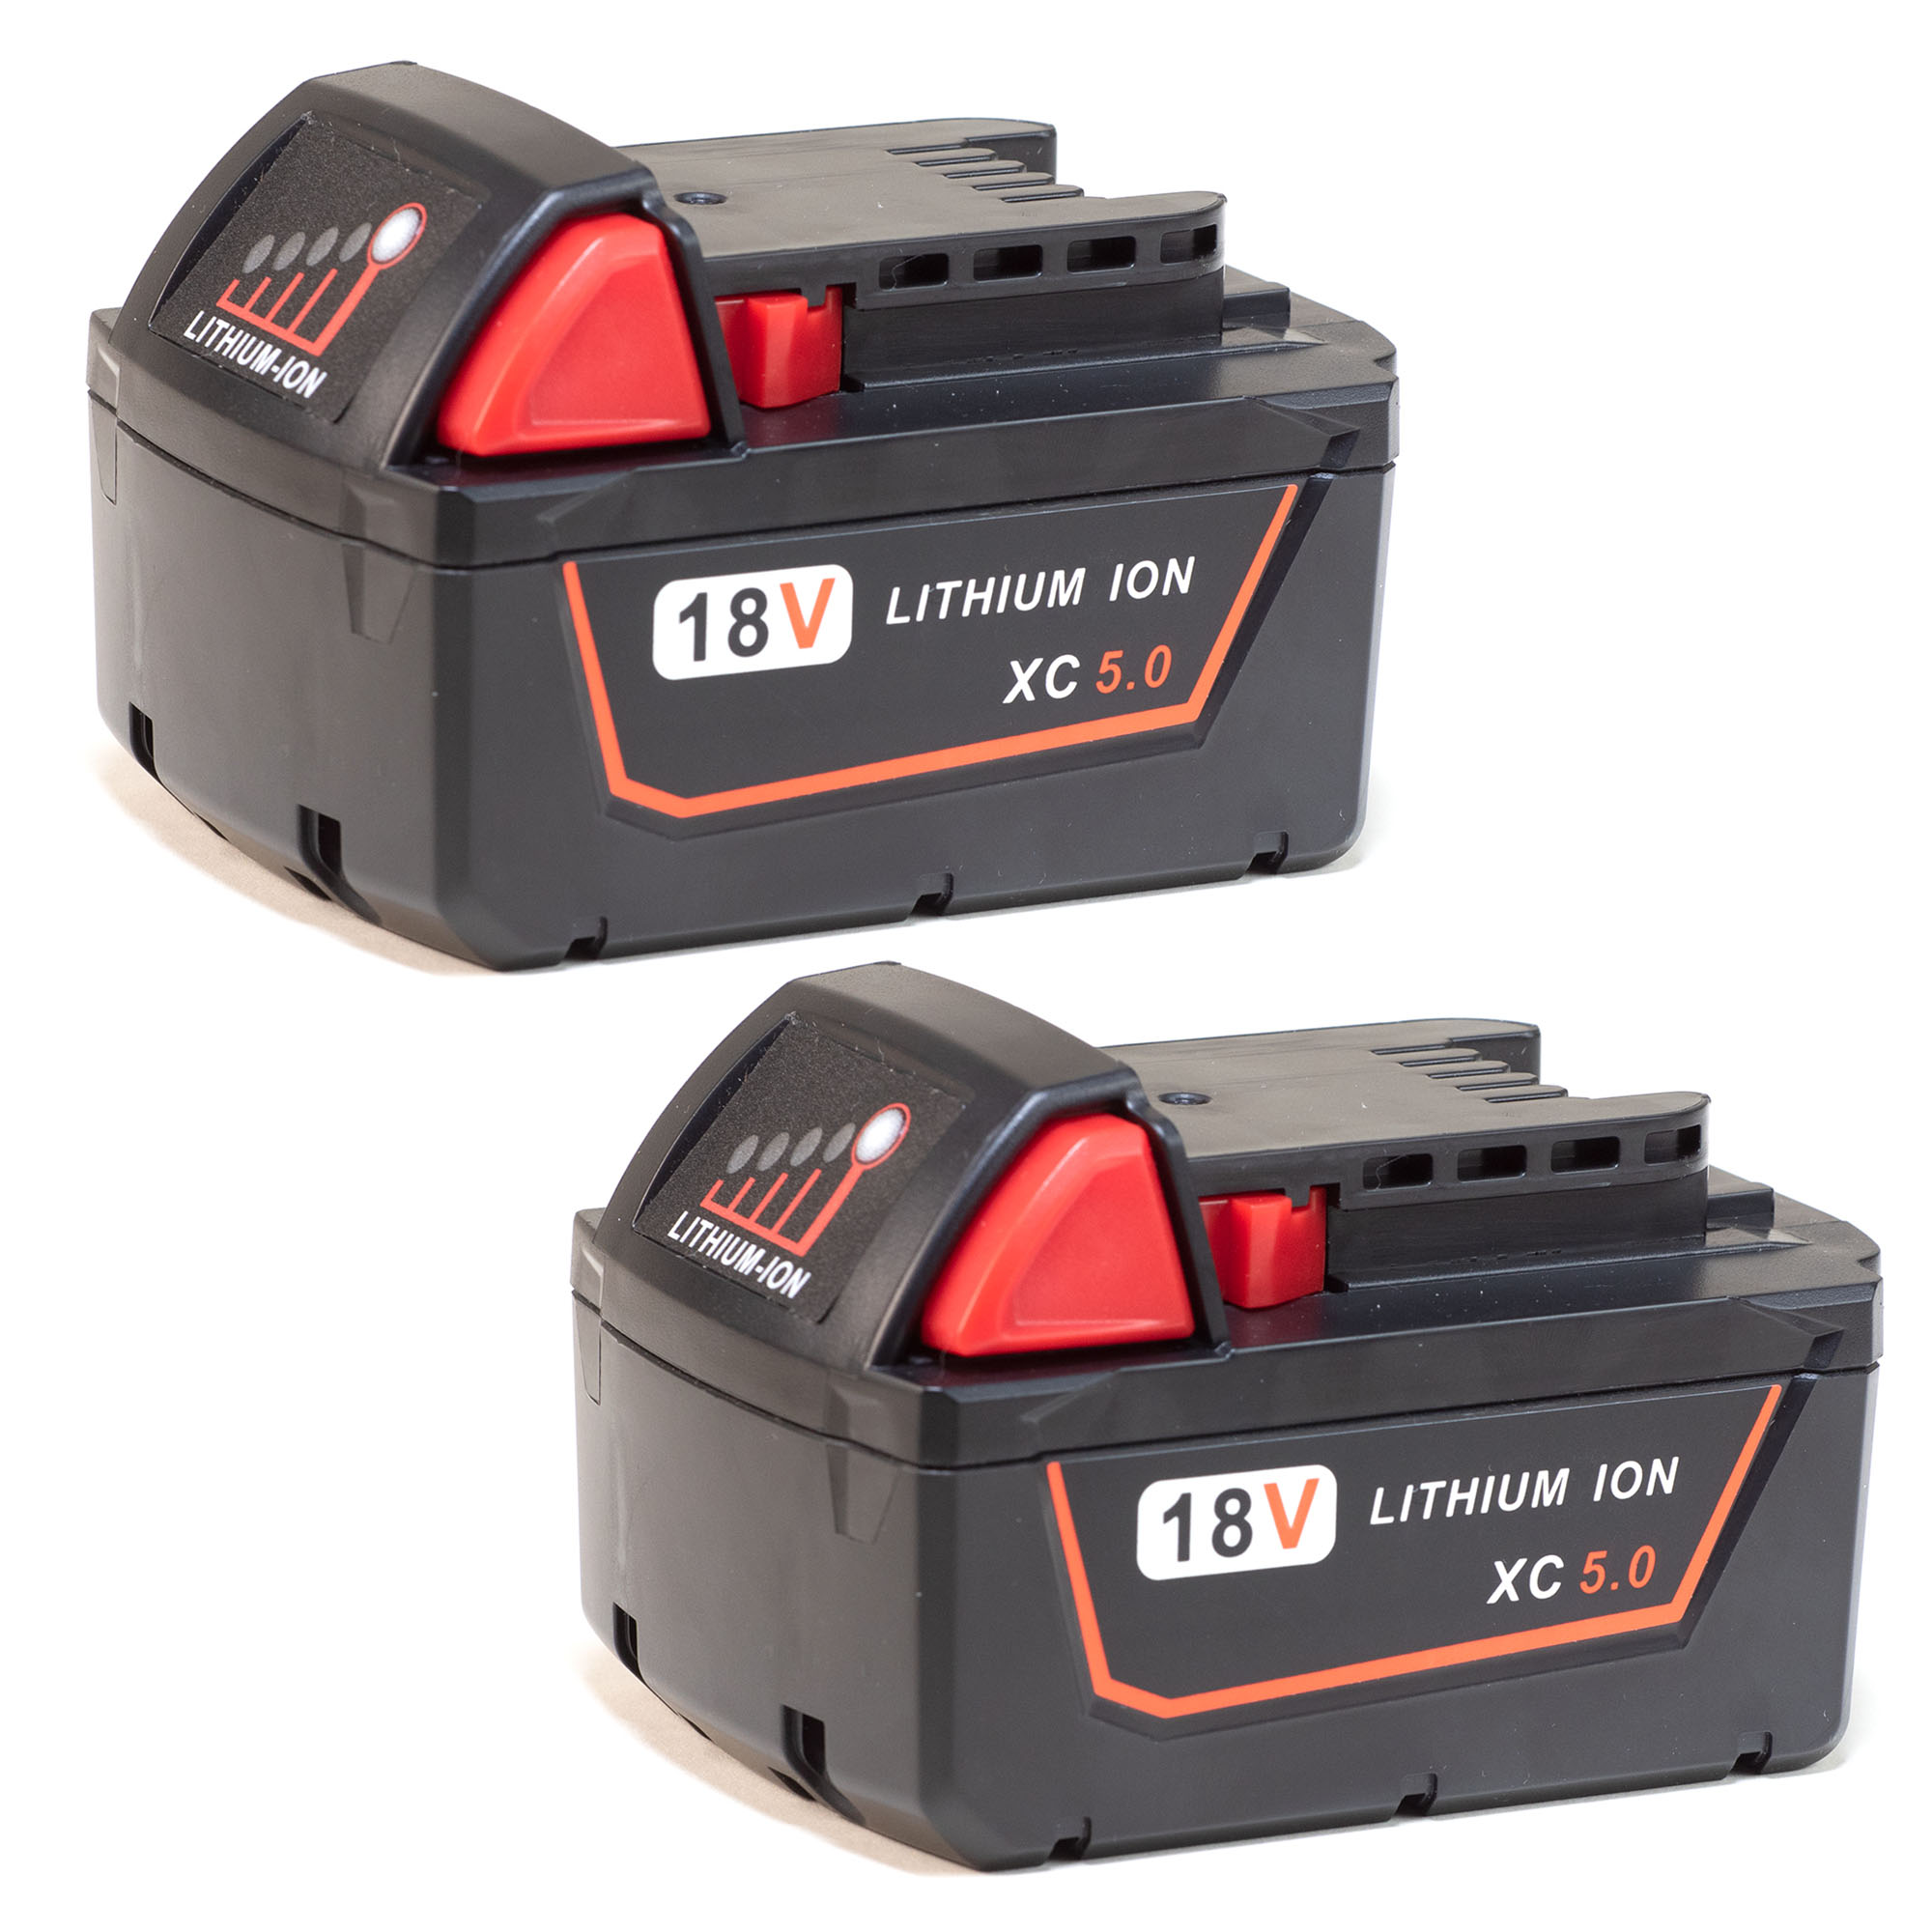 Replacement for Milwaukee M18 REDLITHIUM 5.0 Battery - 48-11-1850 (2 Pack)